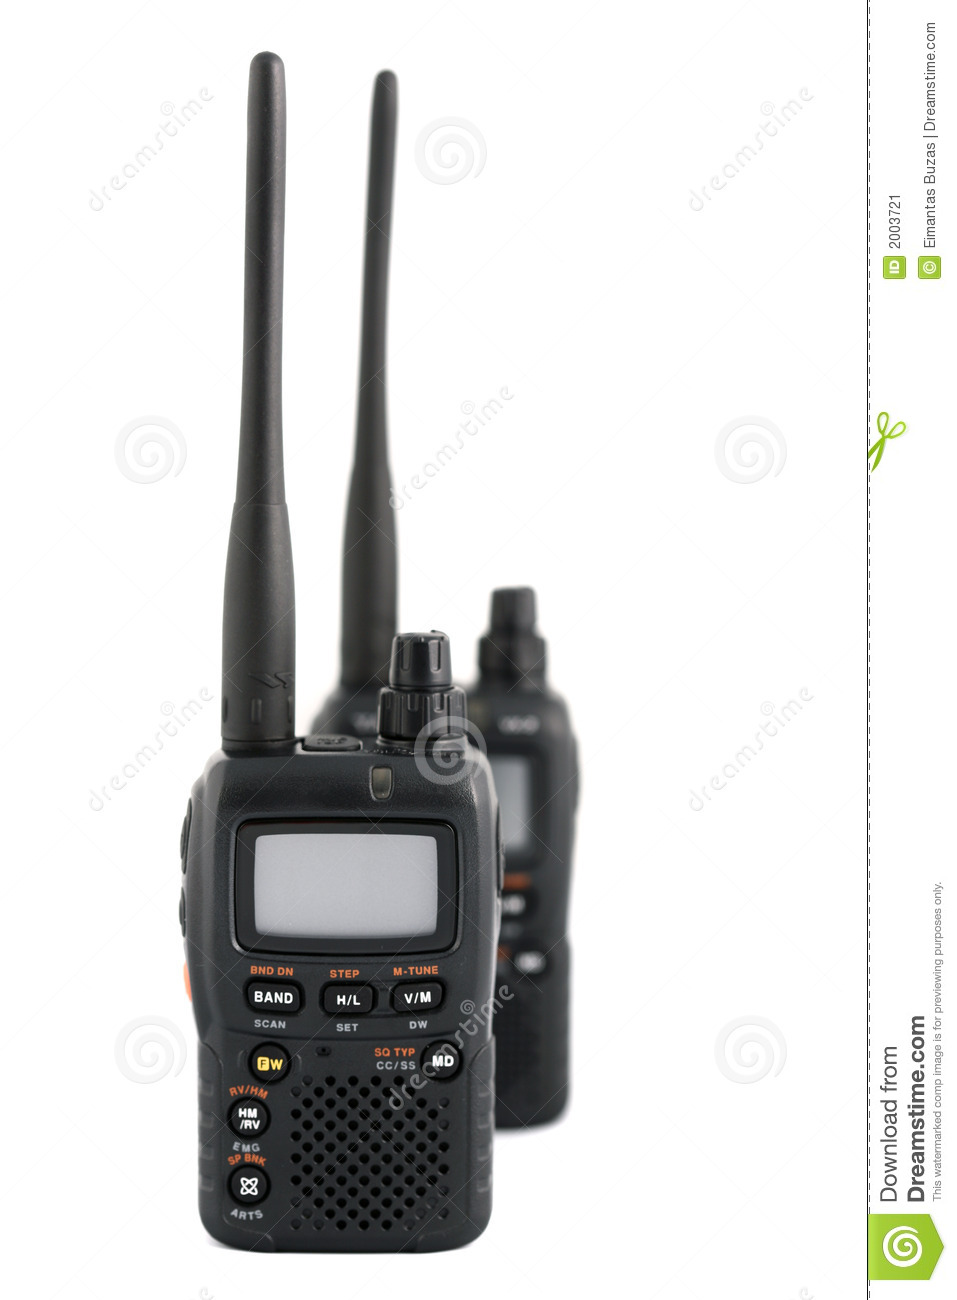 Harness furthermore 268238 93 300e Need Help W Wiring Diagram Radio further Relays together with 4ejog Chevrolet Impala 67 Chevy Impala W 283 Engine Need Wiring furthermore 3tmsh 1999 Ford Crown Victoria Stereo Wiring Diagram S Wiring Harness. on two way radio harness